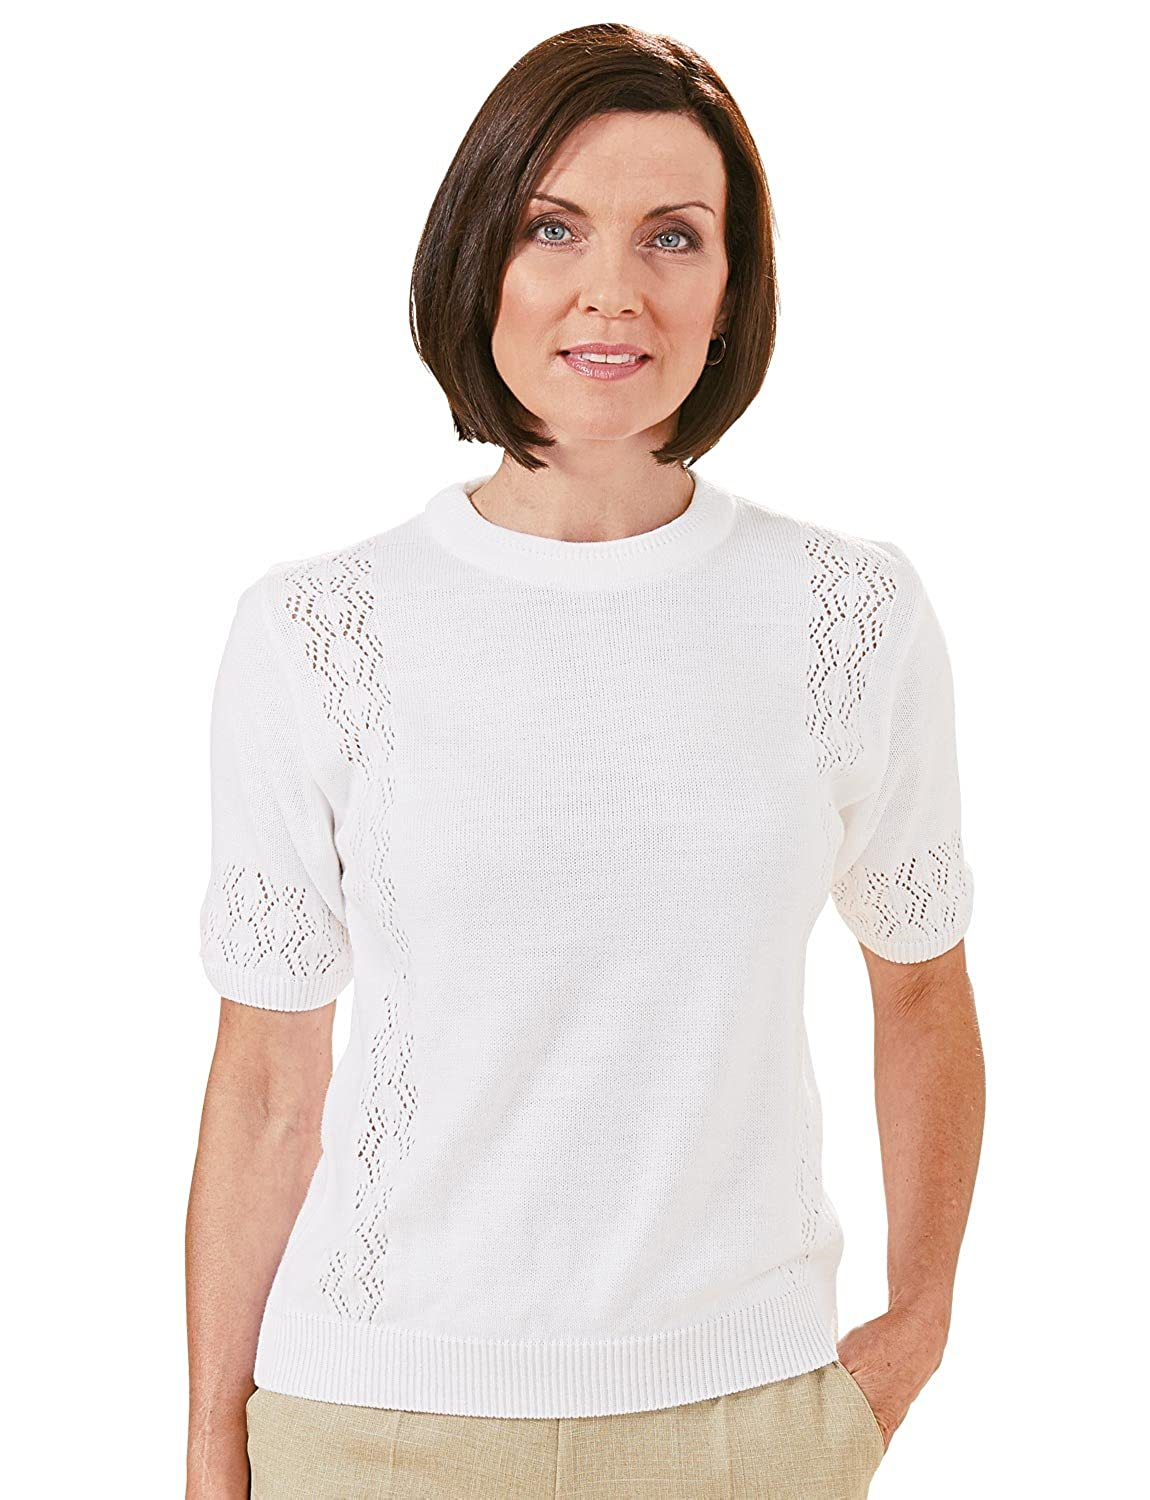 68563a7703d56 Chums Ladies Womens Crew Neck Short Sleeved Jumper  Amazon.co.uk  Clothing